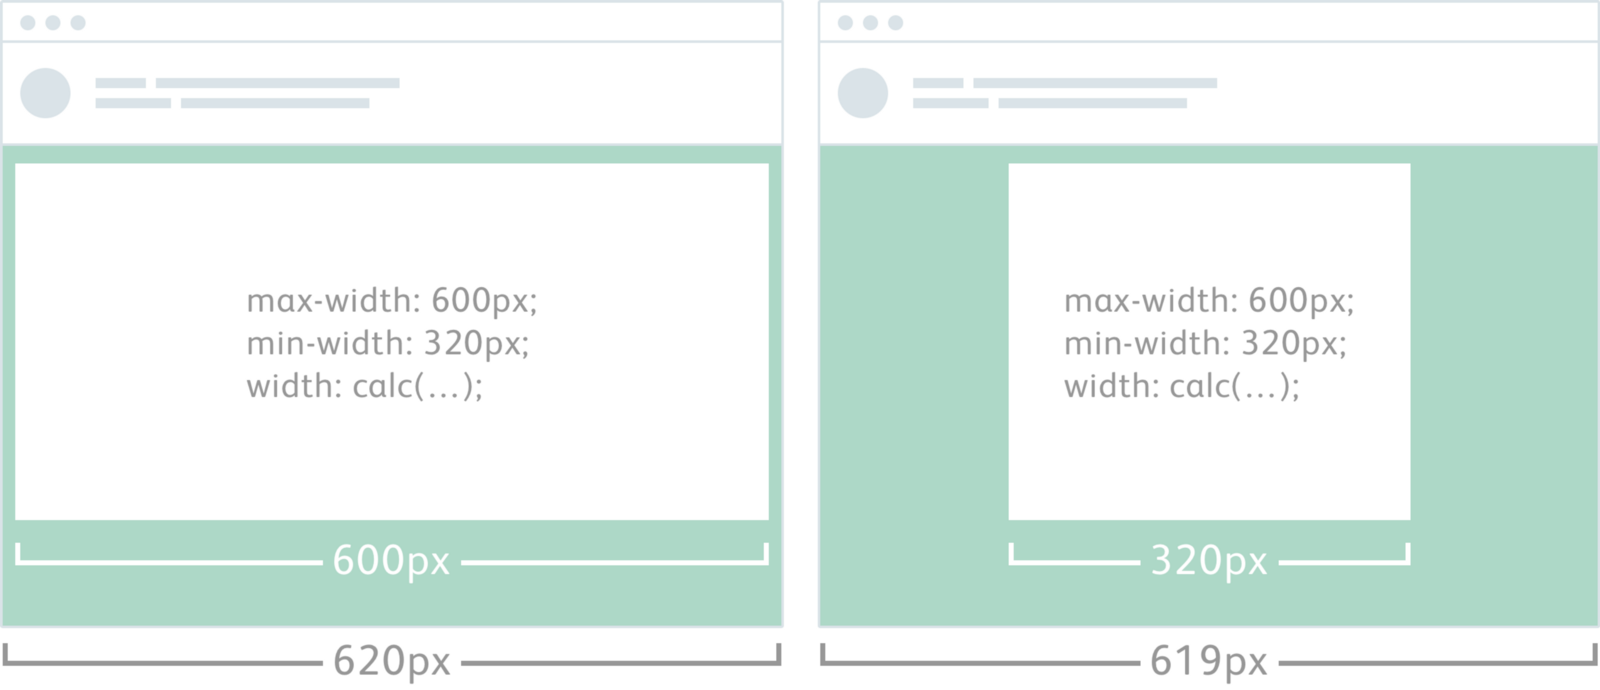 But if the email client width is reduced by just one pixel to 619px, the  result is 320px, our mobile width. This allows us to switch successfully  between ...